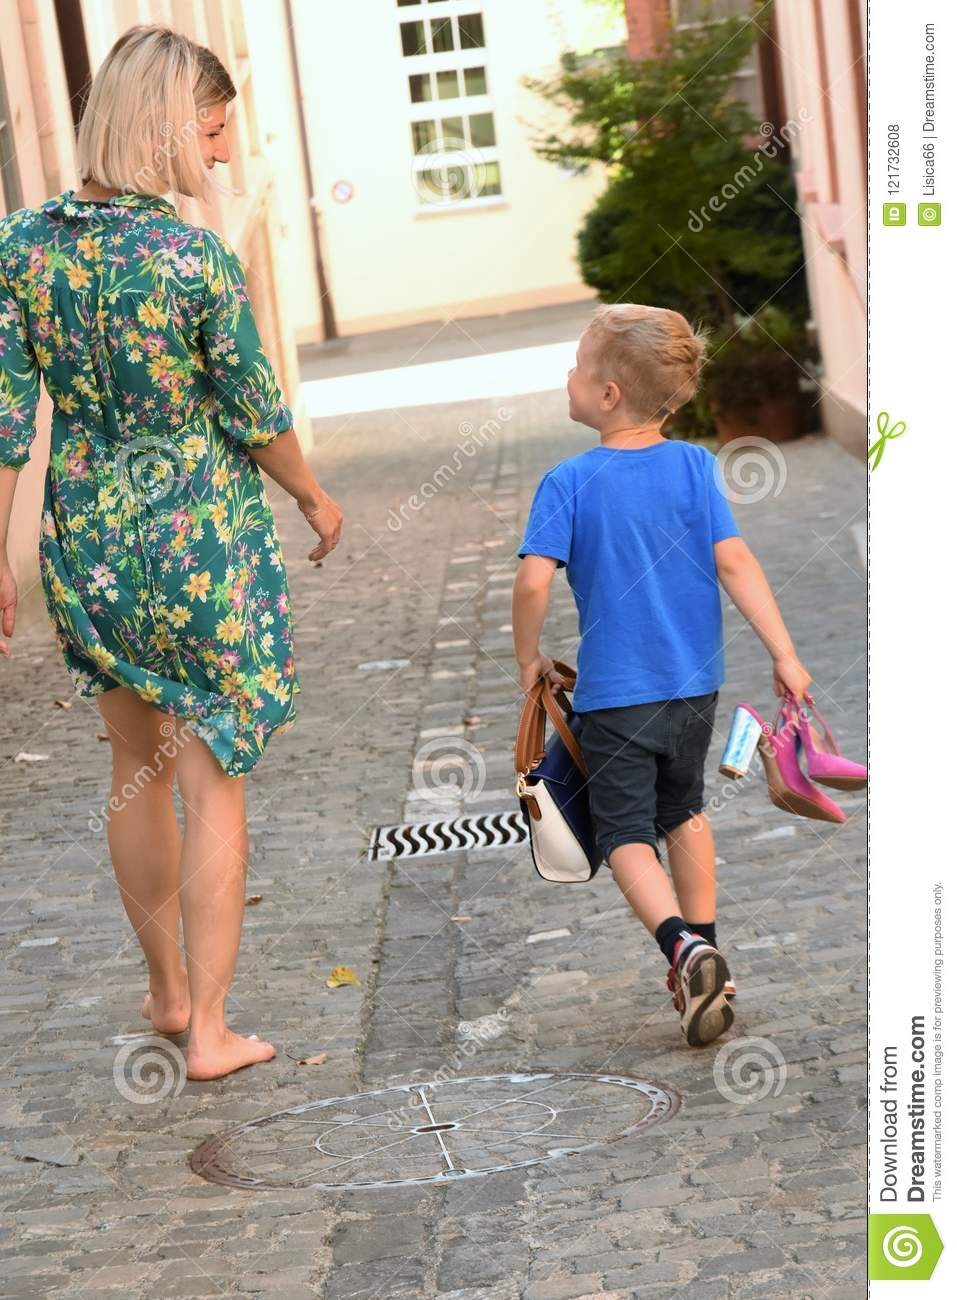 https://thumbs.dreamstime.com/z/young-woman-boy-women-dress-walking-barefoot-along-street-who-holding-sandals-purse-her-hand-121732608.jpg